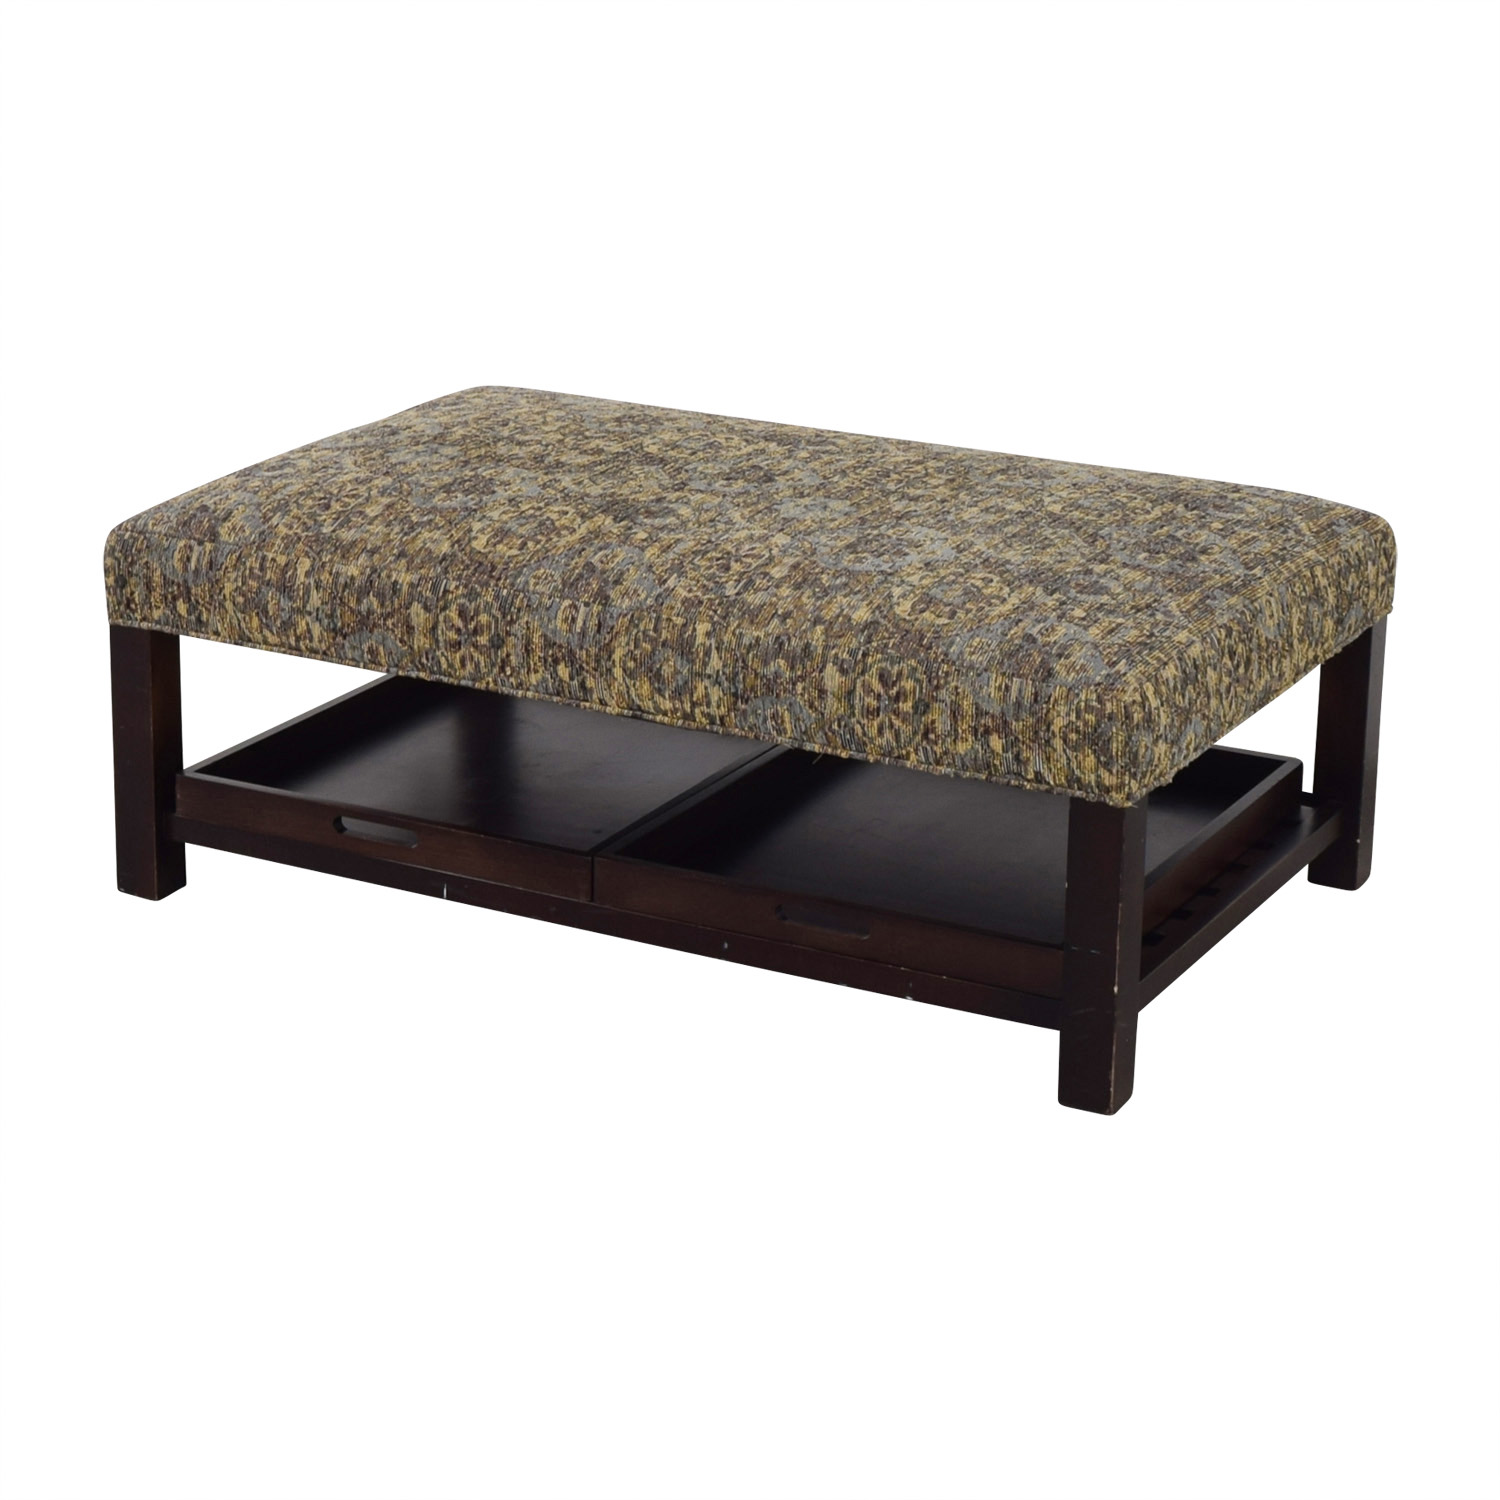 ... Arhaus Arhaus Multi-Colored Ottoman with Storage Trays discount ...  sc 1 st  Furnishare : colored ottomans with storage  - Aquiesqueretaro.Com